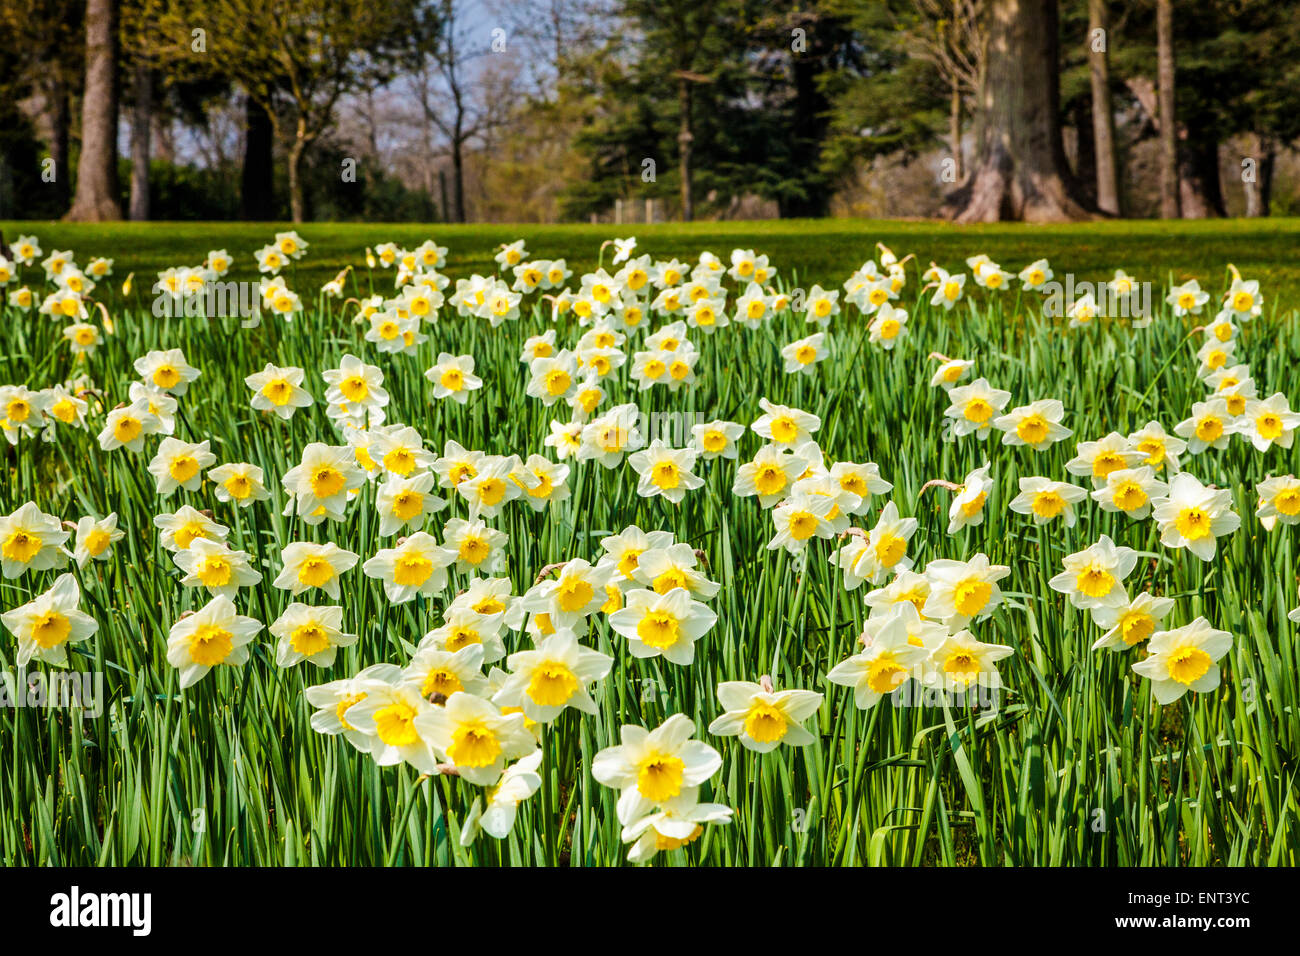 Daffodils at the Bowood Estate in Wiltshire. Stock Photo